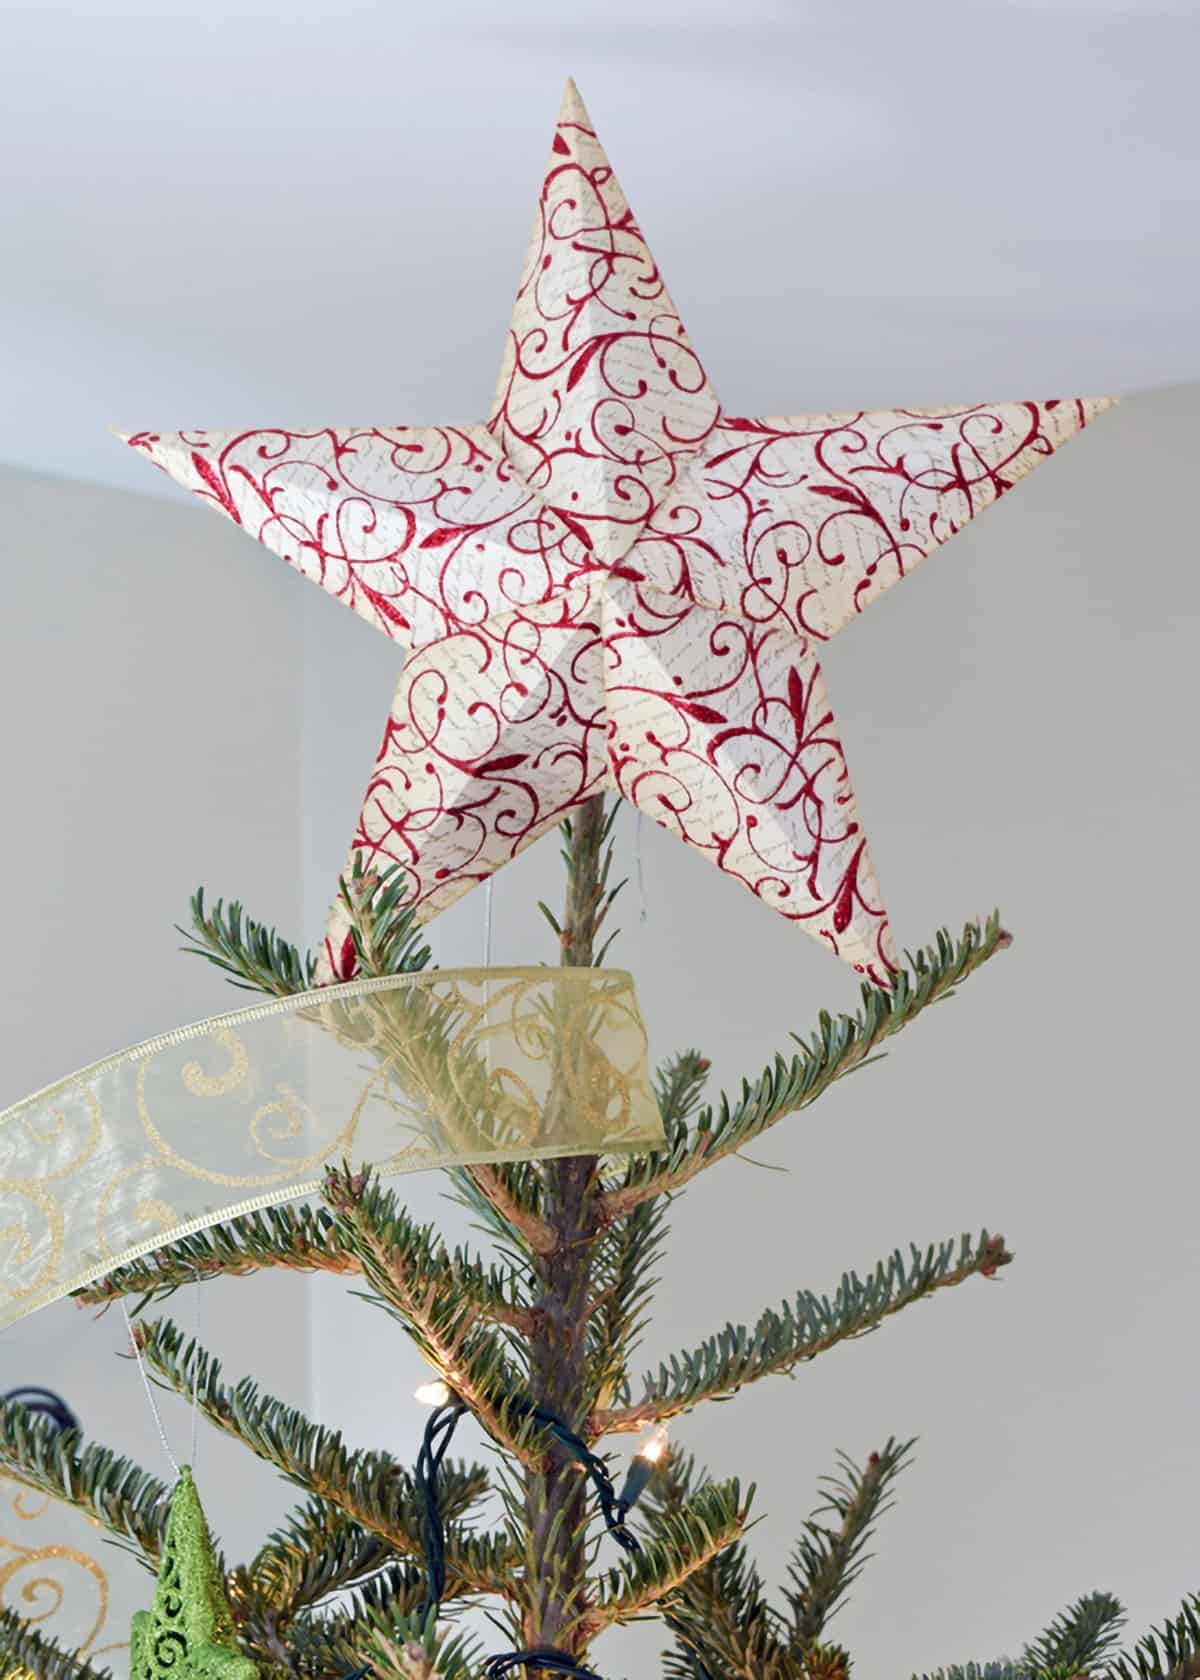 3-D printable white and red star tree topper on top of Christmas tree with gold ribbon garland.